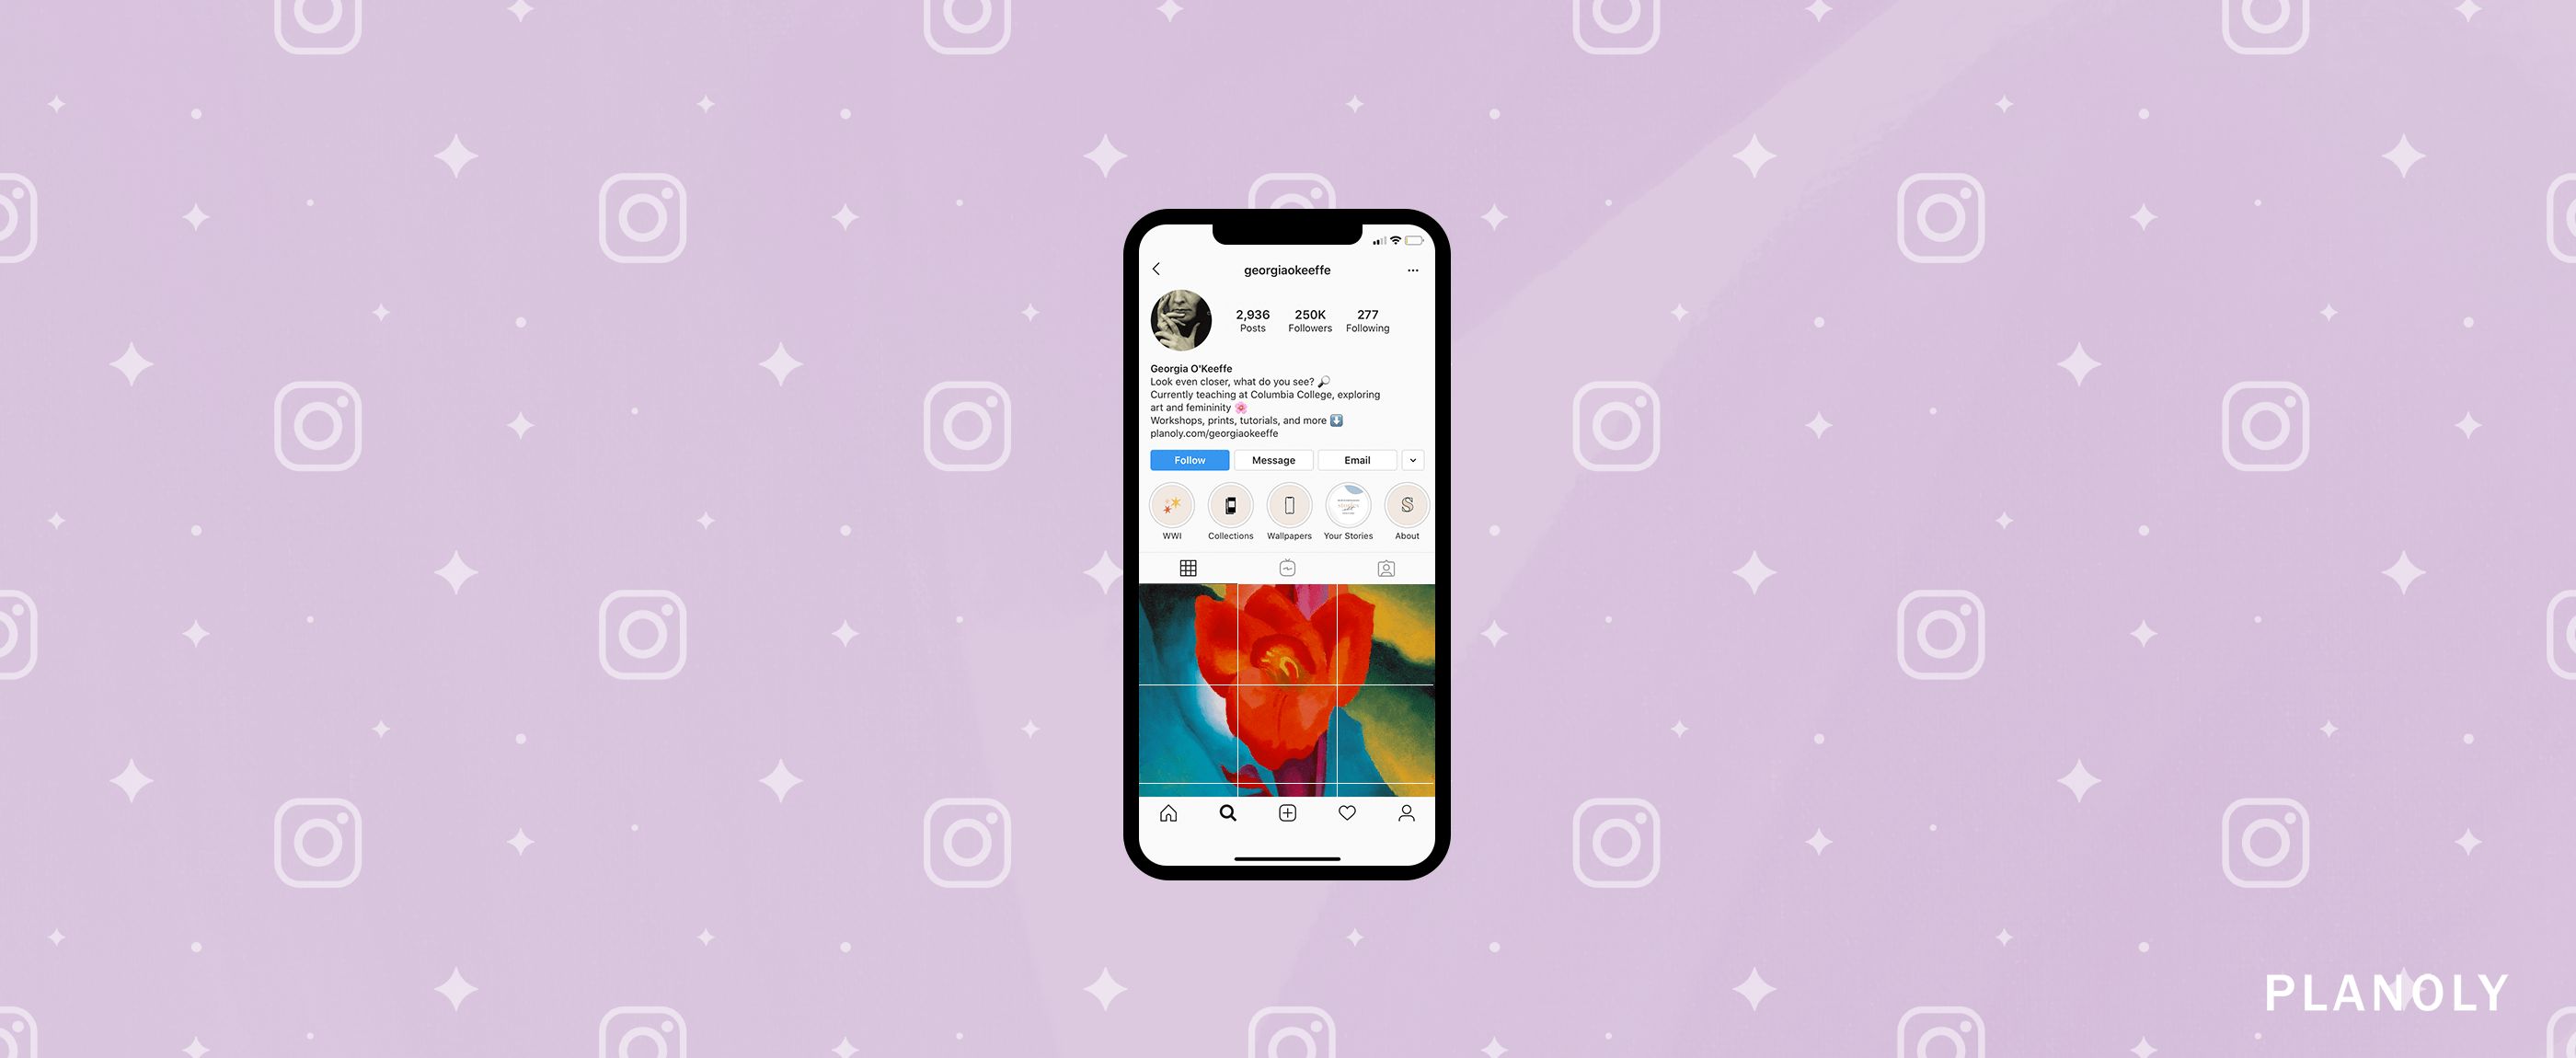 6 Tips to Write a Better Instagram Bio